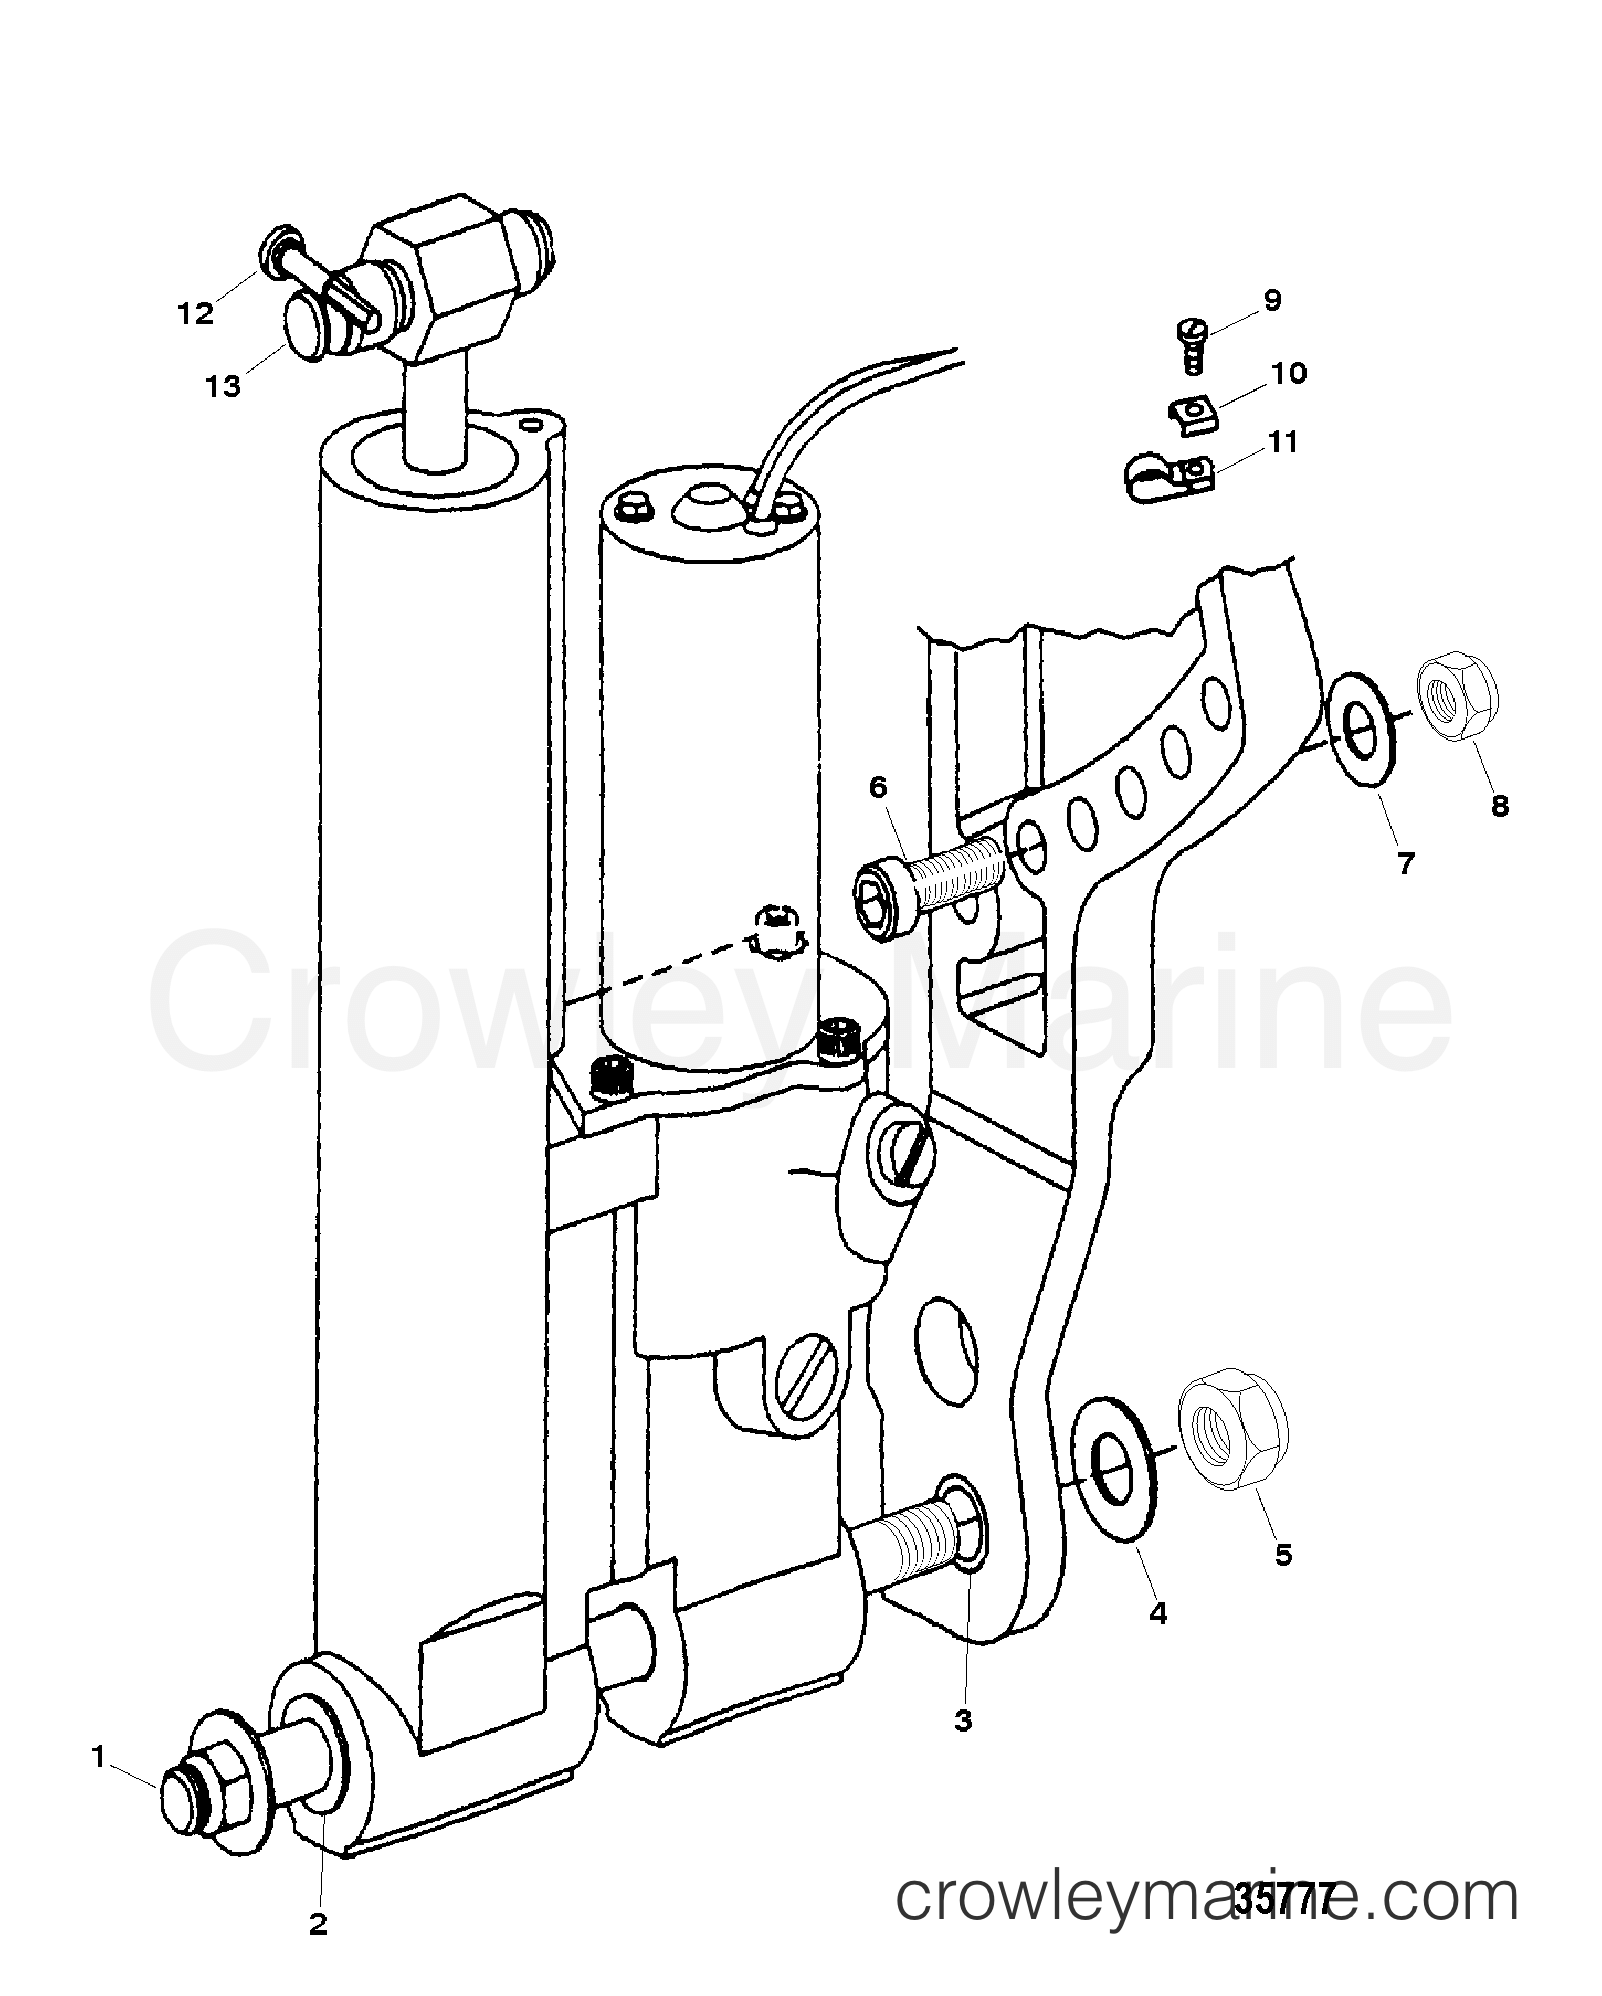 Trim Mounting Hydraulic